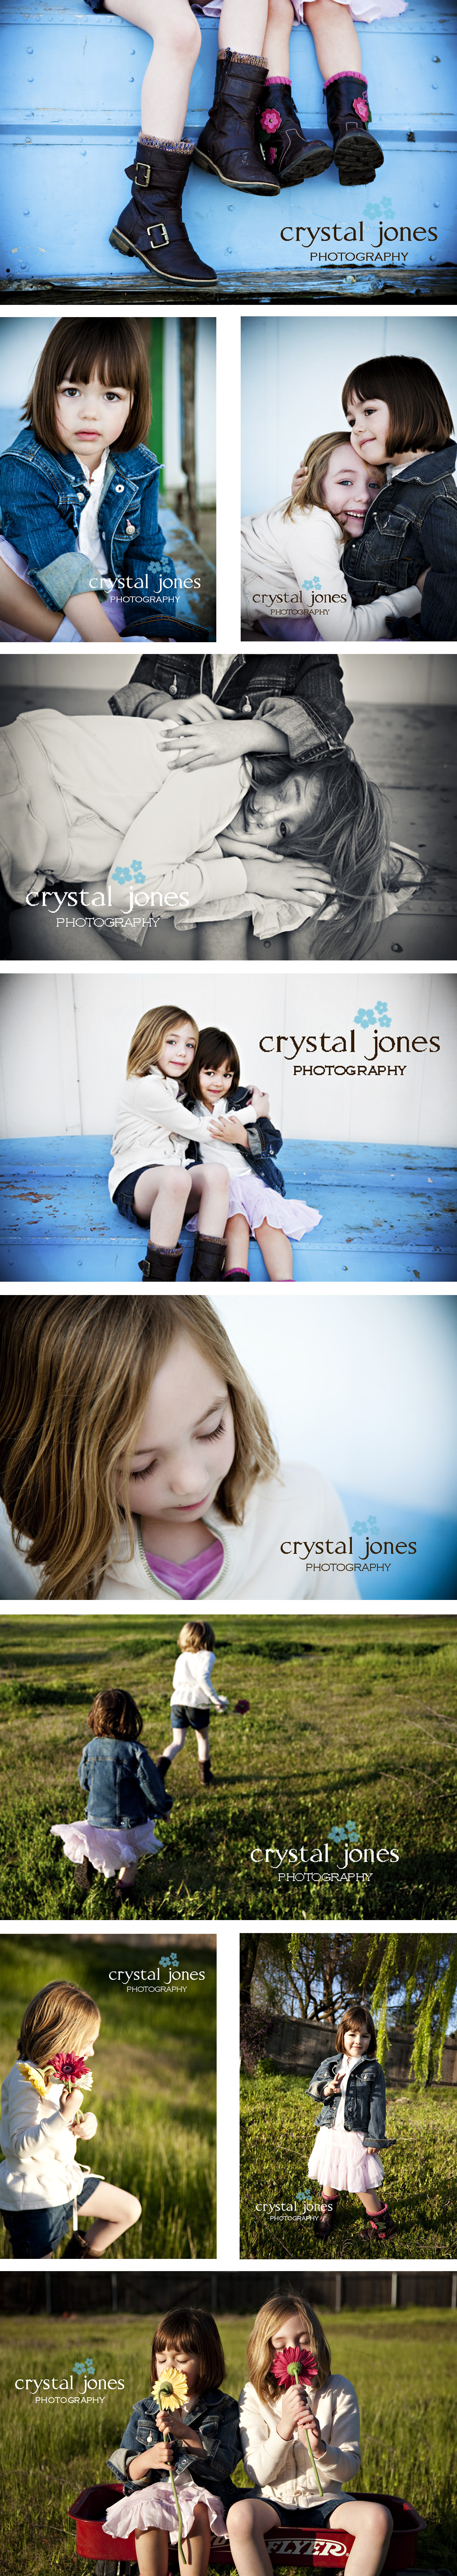 Roseville California children's portraits in a beautiful meadow